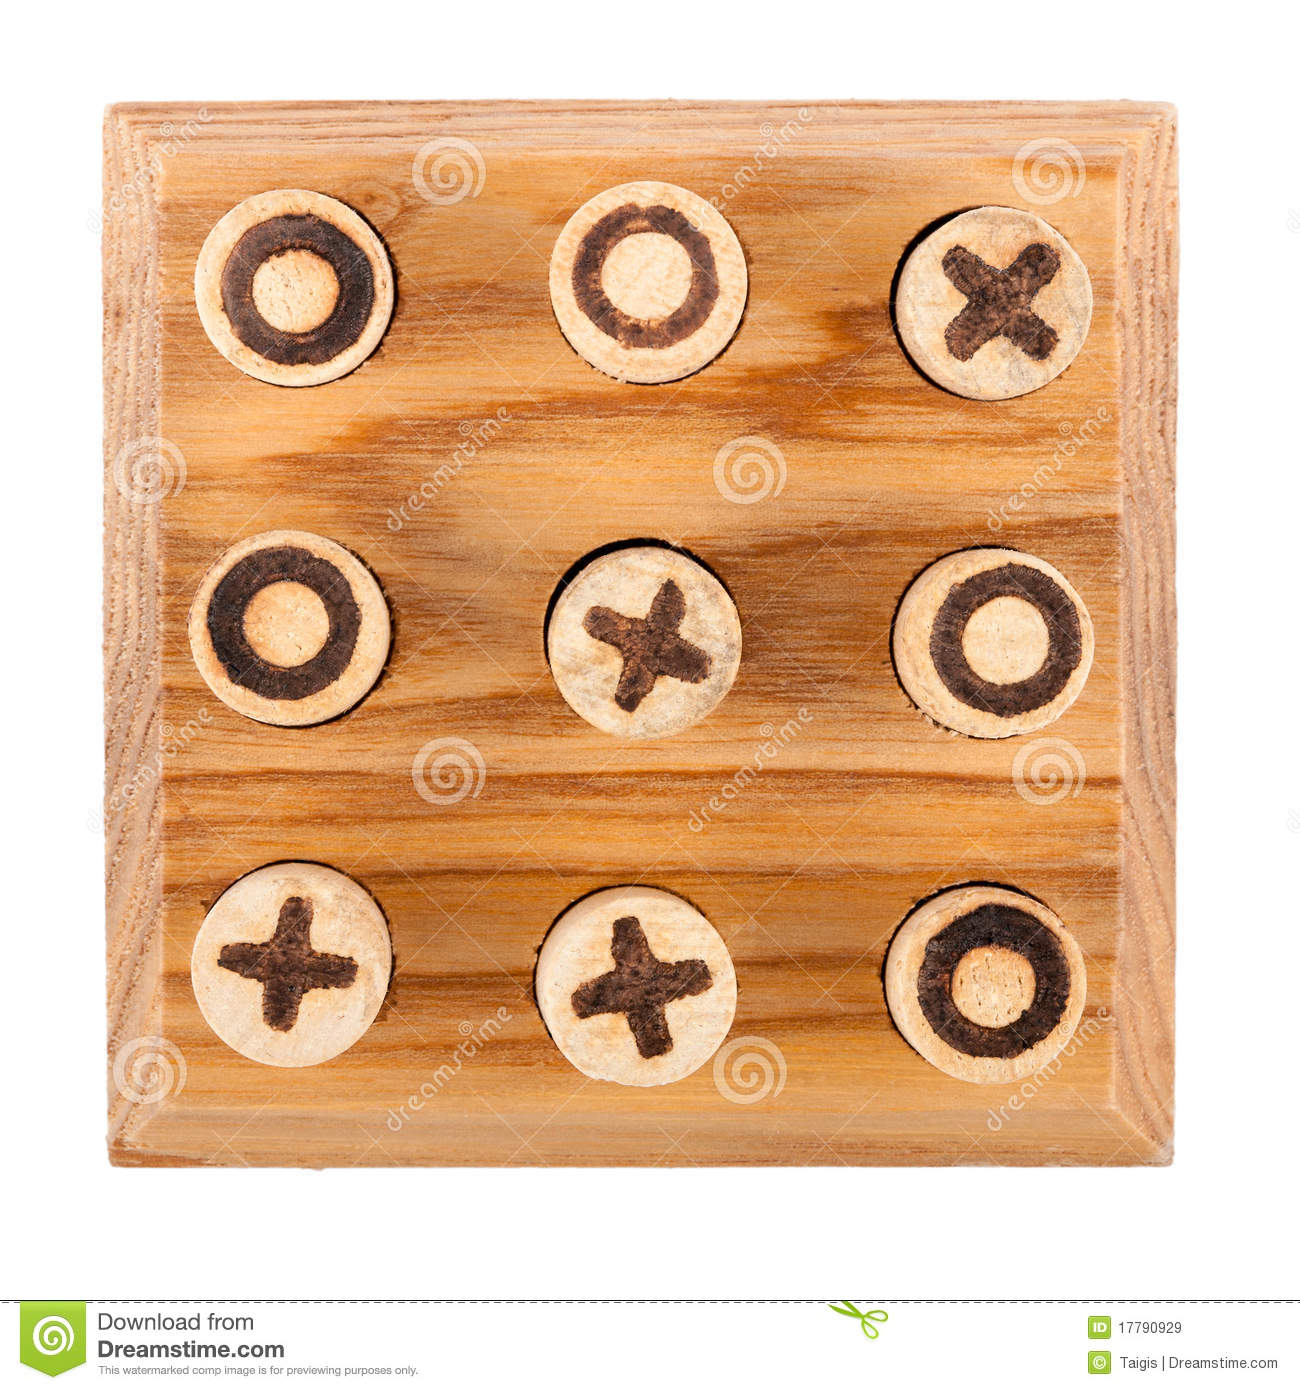 Naughts And Crosses Royalty Free Stock Images - Image: 17790929